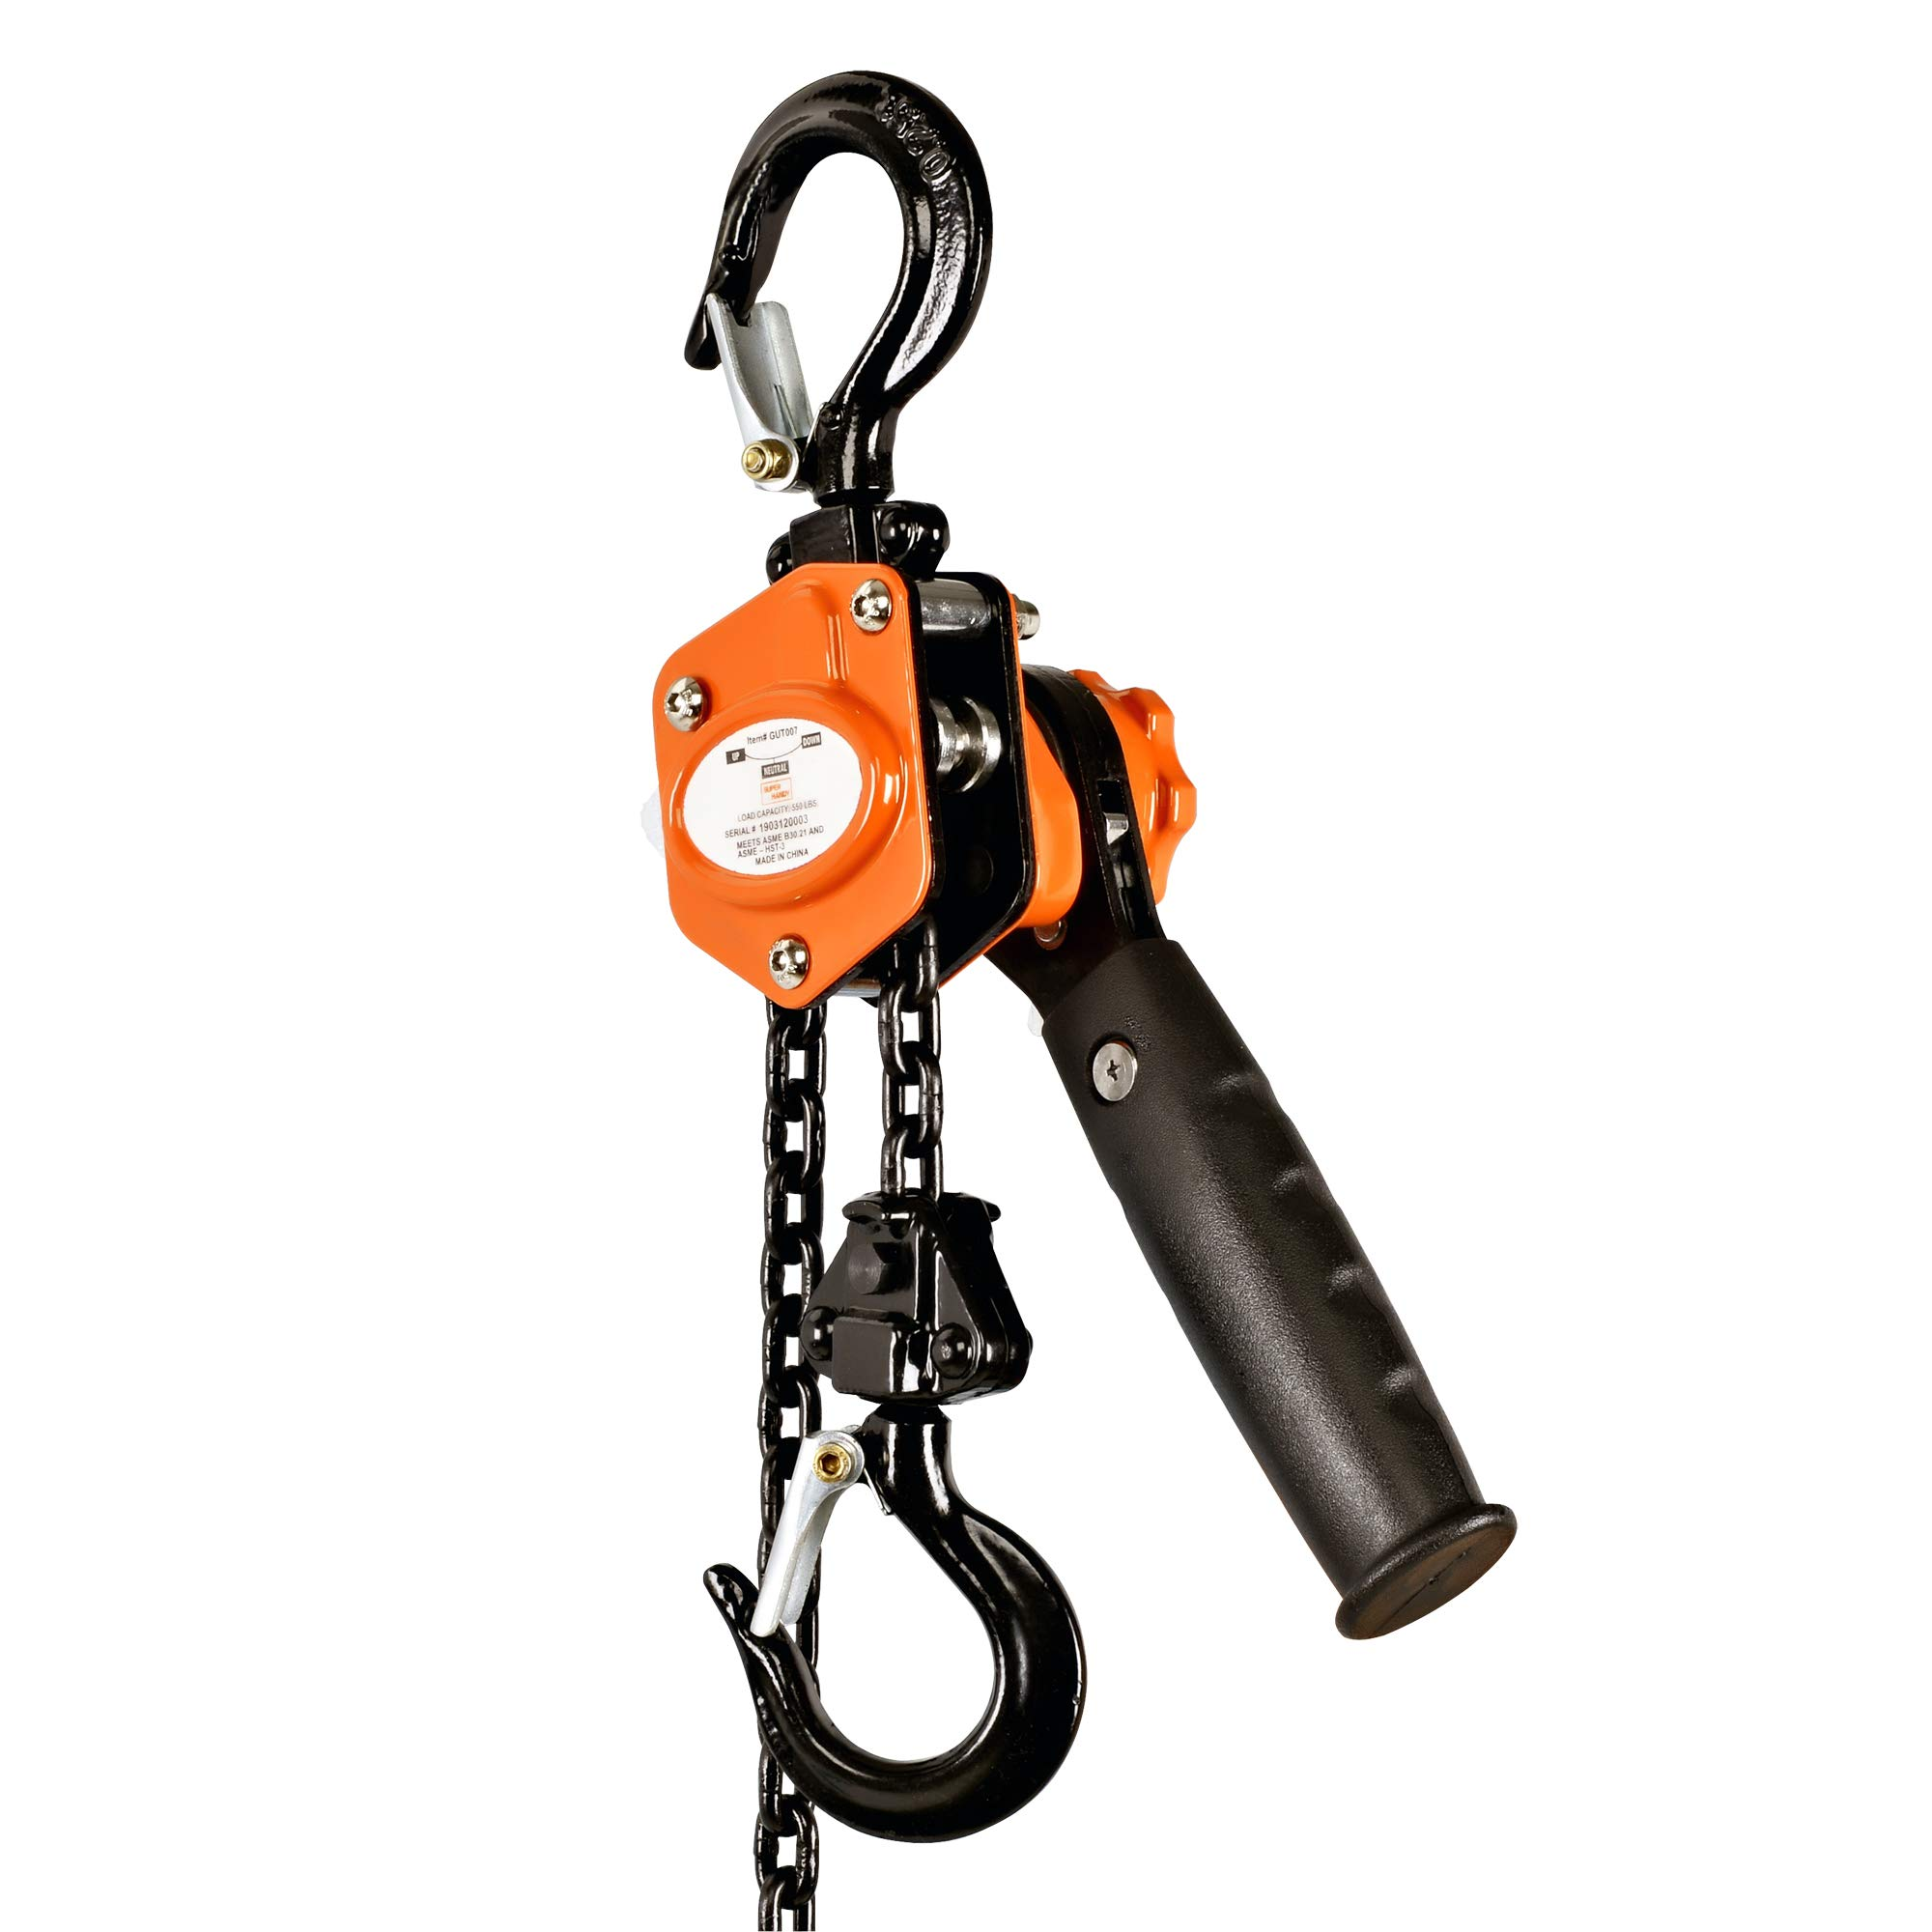 SuperHandy Mini Lever Hoist Come Along 1/4 TON 550 LBS Capacity 5FT Lift 2 Heavy Duty Hooks Commercial Grade Steel for Lifting Pulling Construction Building Garages Warehouse Automotive Machinery